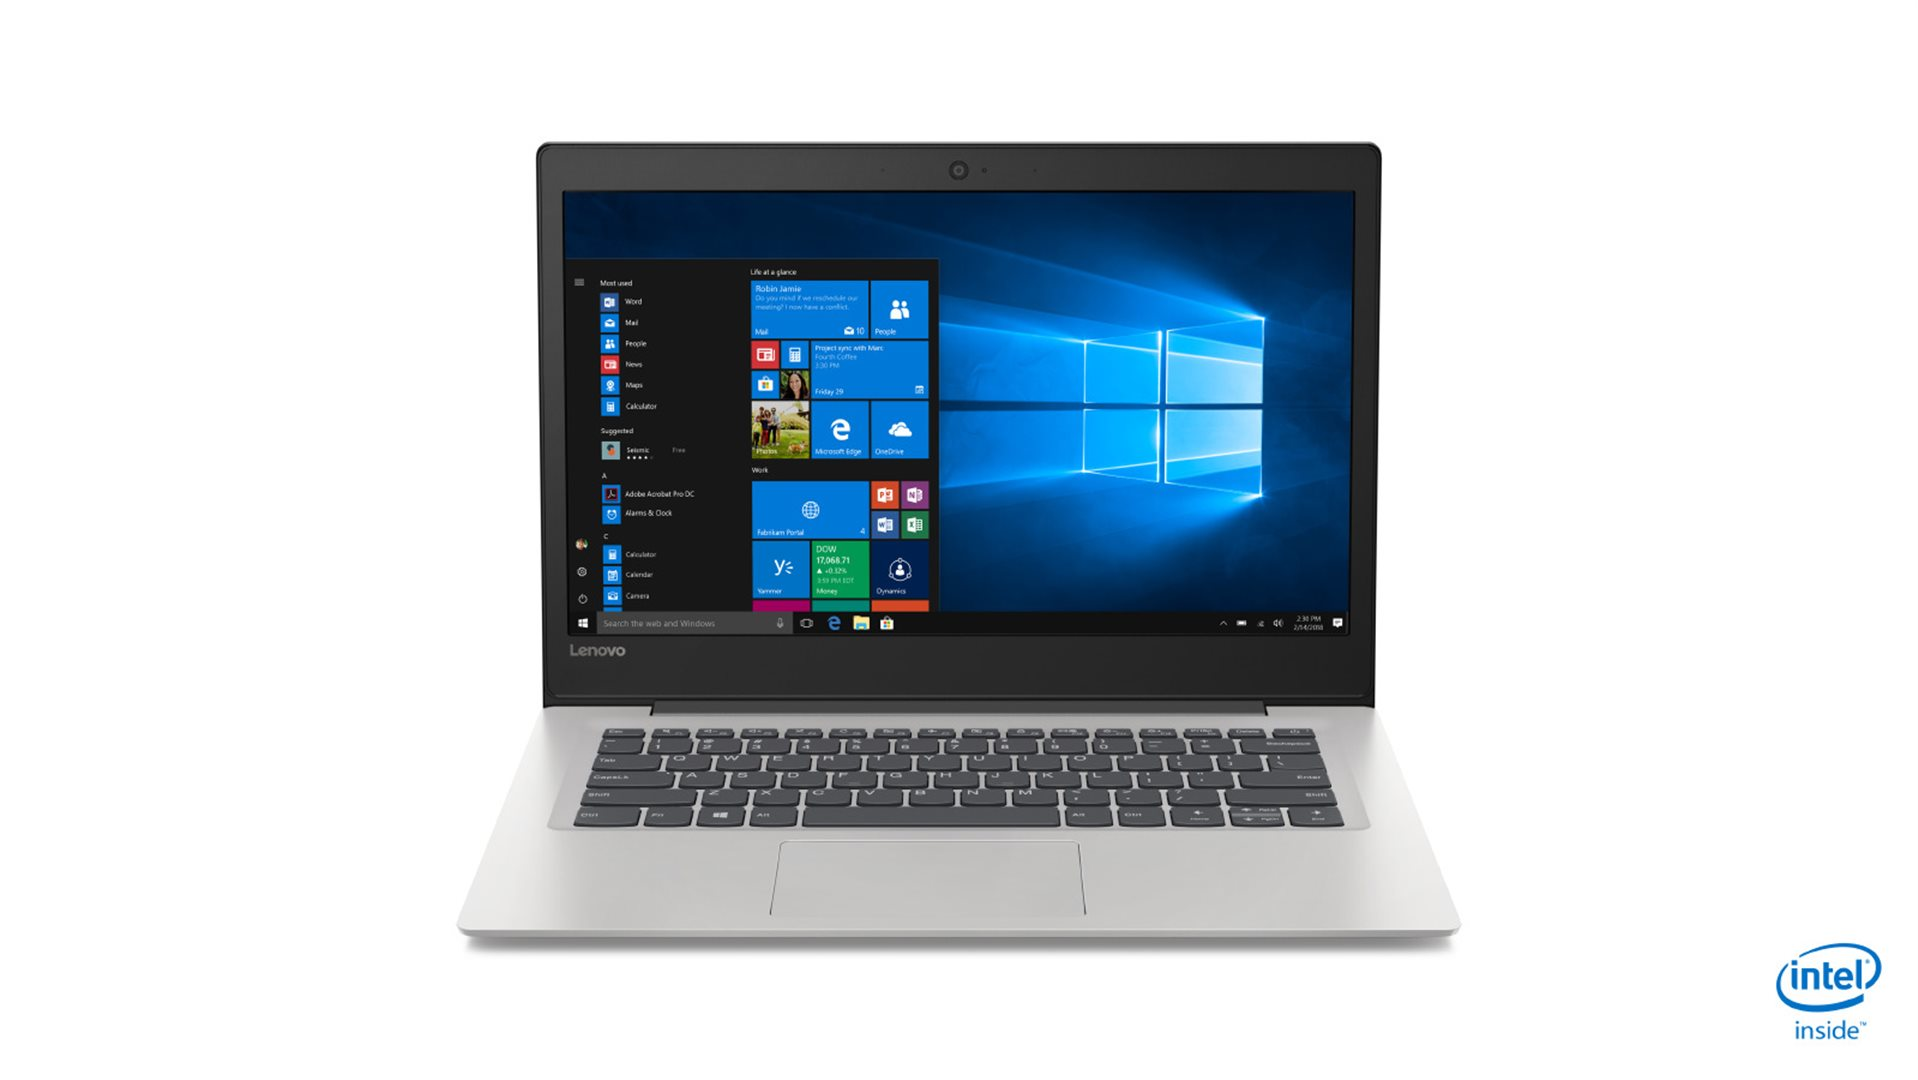 IP S130 14 FHD/N5000/4GB/64G/INT/W10S mode šedý + Office 365 na rok zdarma